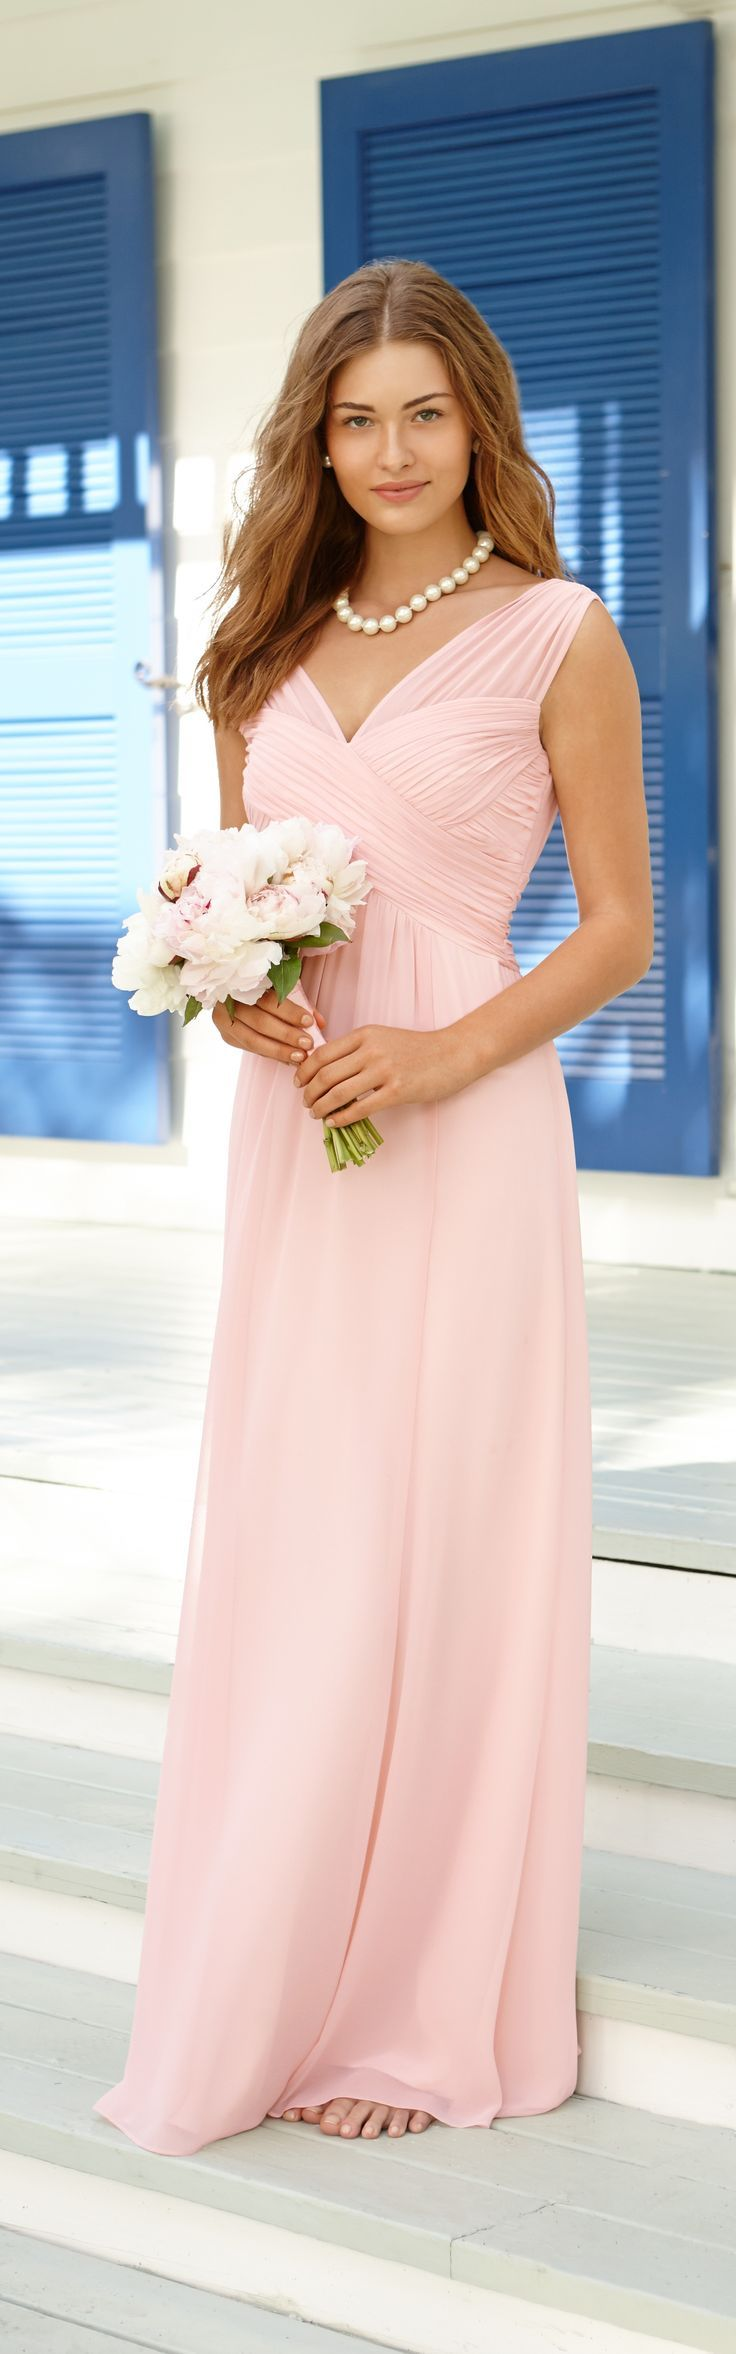 Best 25 blush pink bridesmaid dresses ideas on pinterest pink now shes your bridesmaid radiant in blush pink bridesmaid dressesblush ombrellifo Images